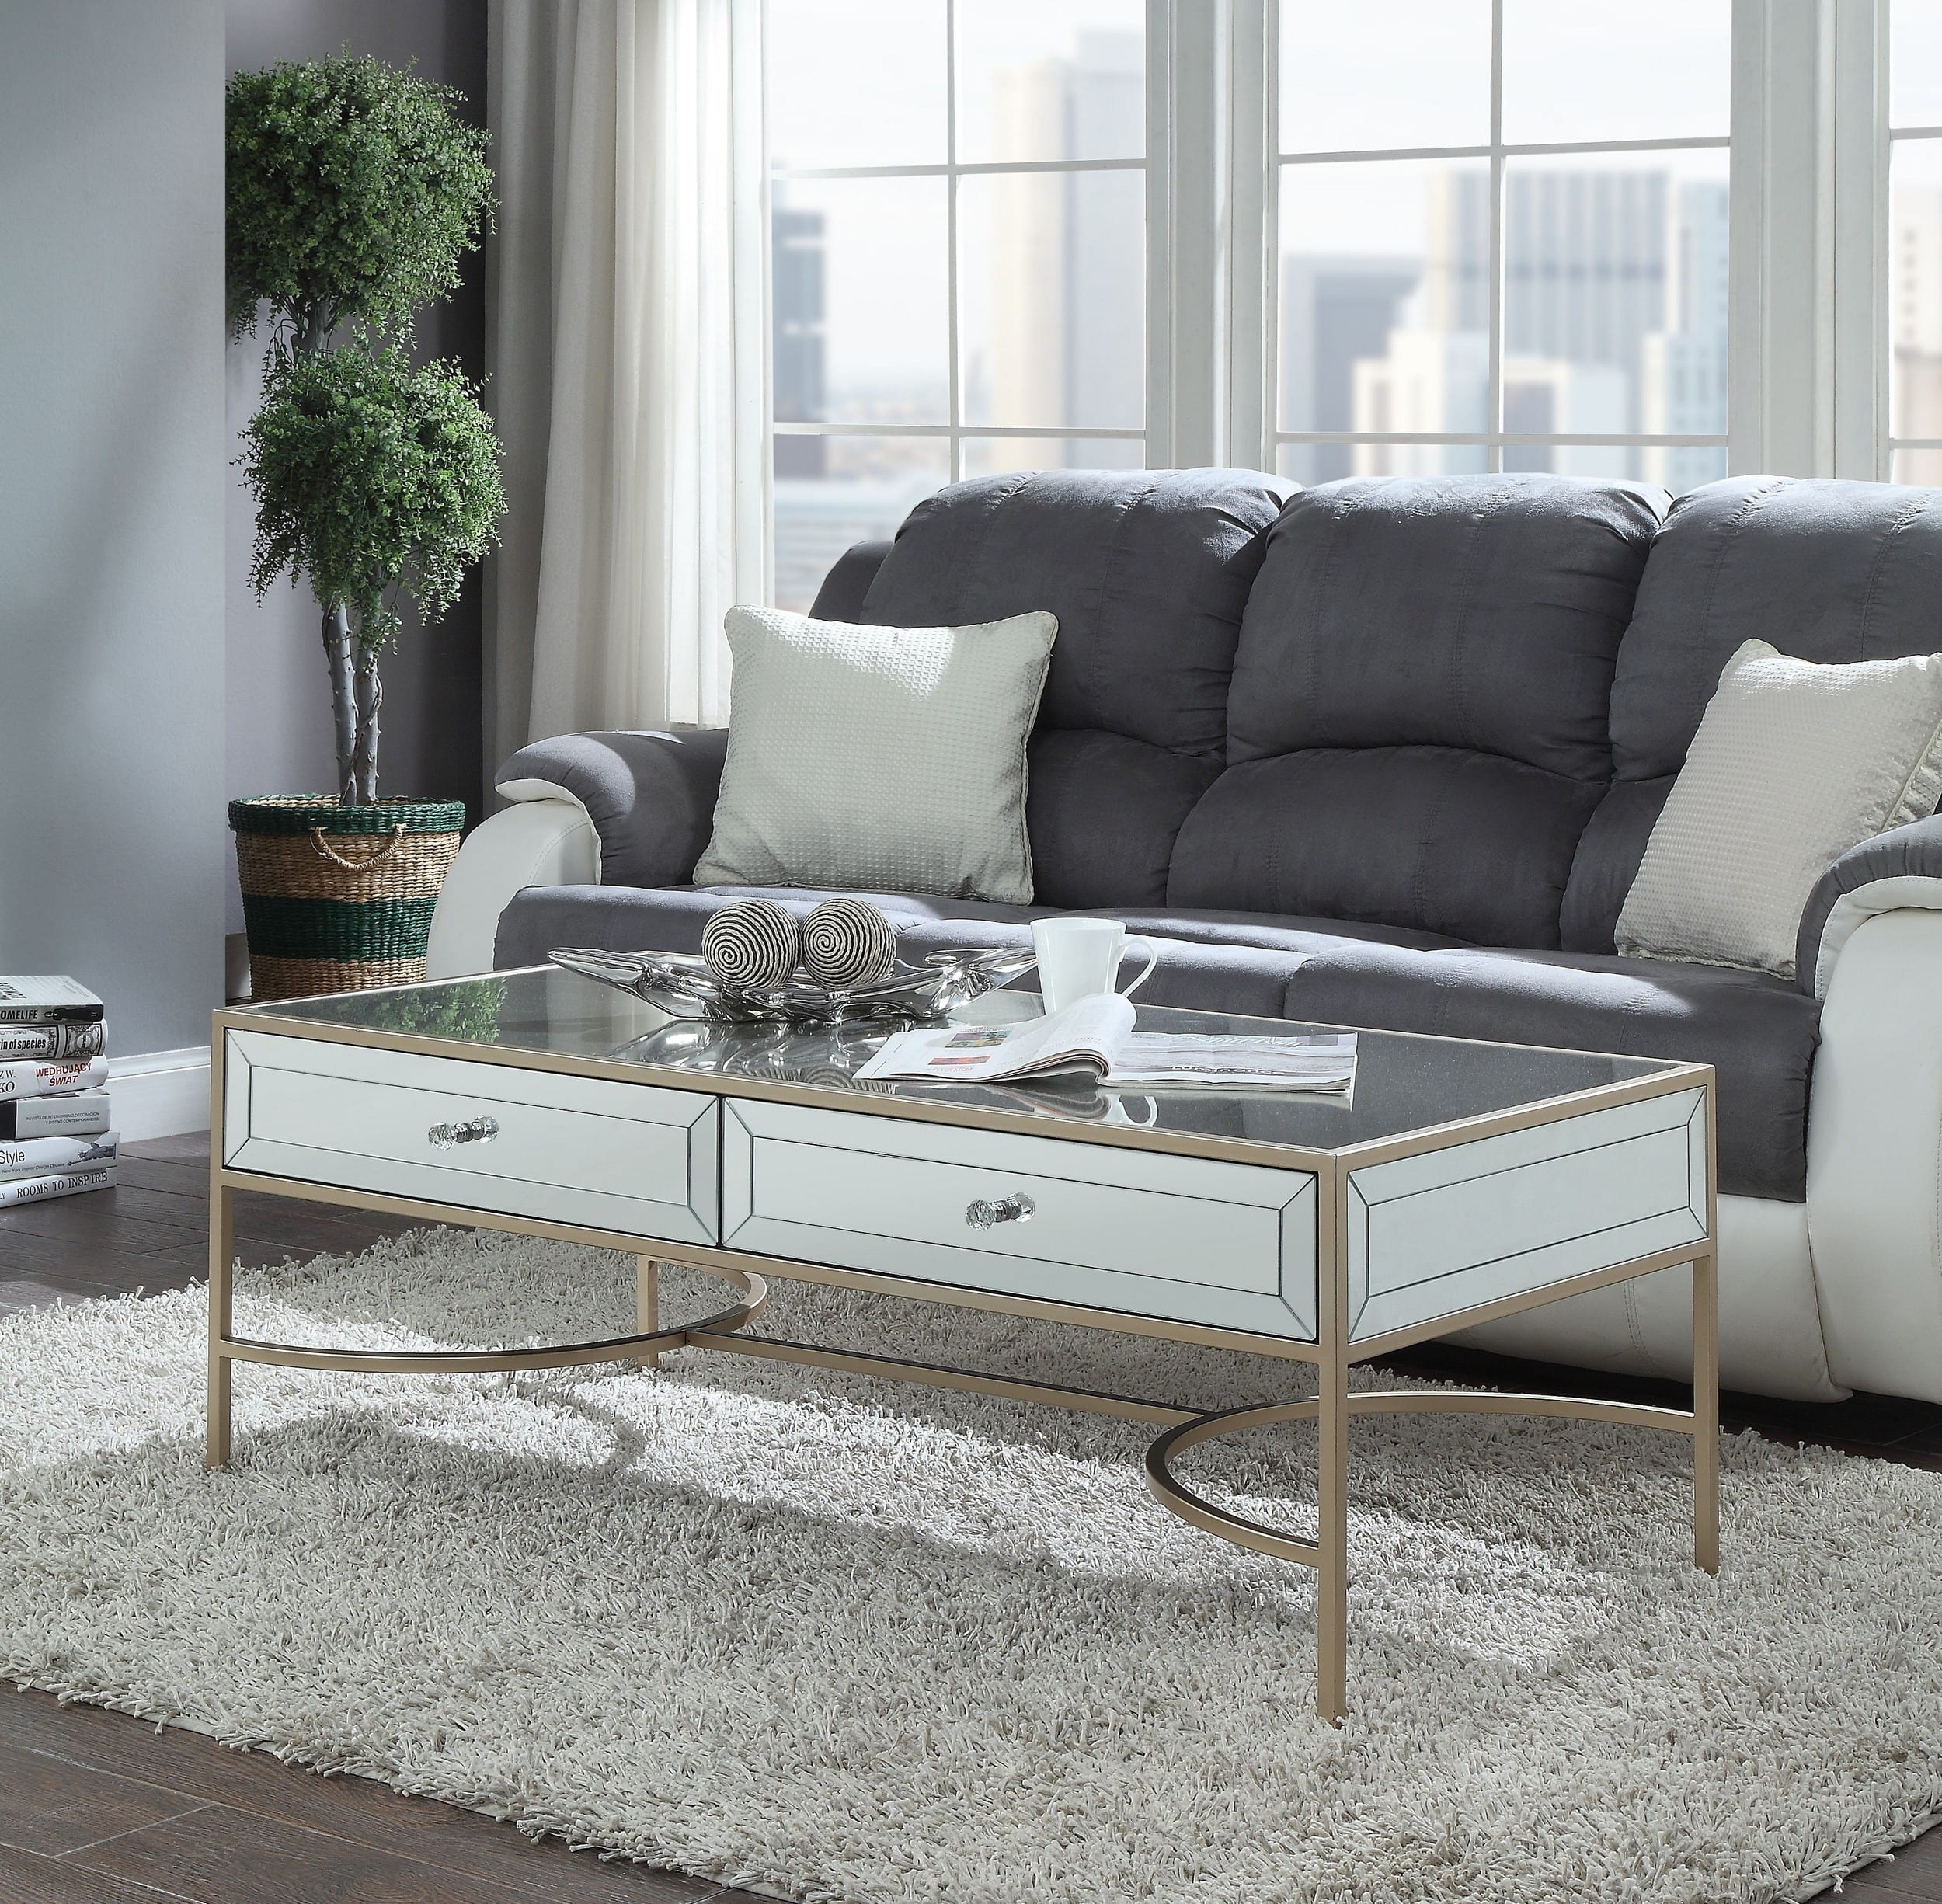 Acme Furniture Wisteria Mirrored Rose Gold Coffee Table Reviews